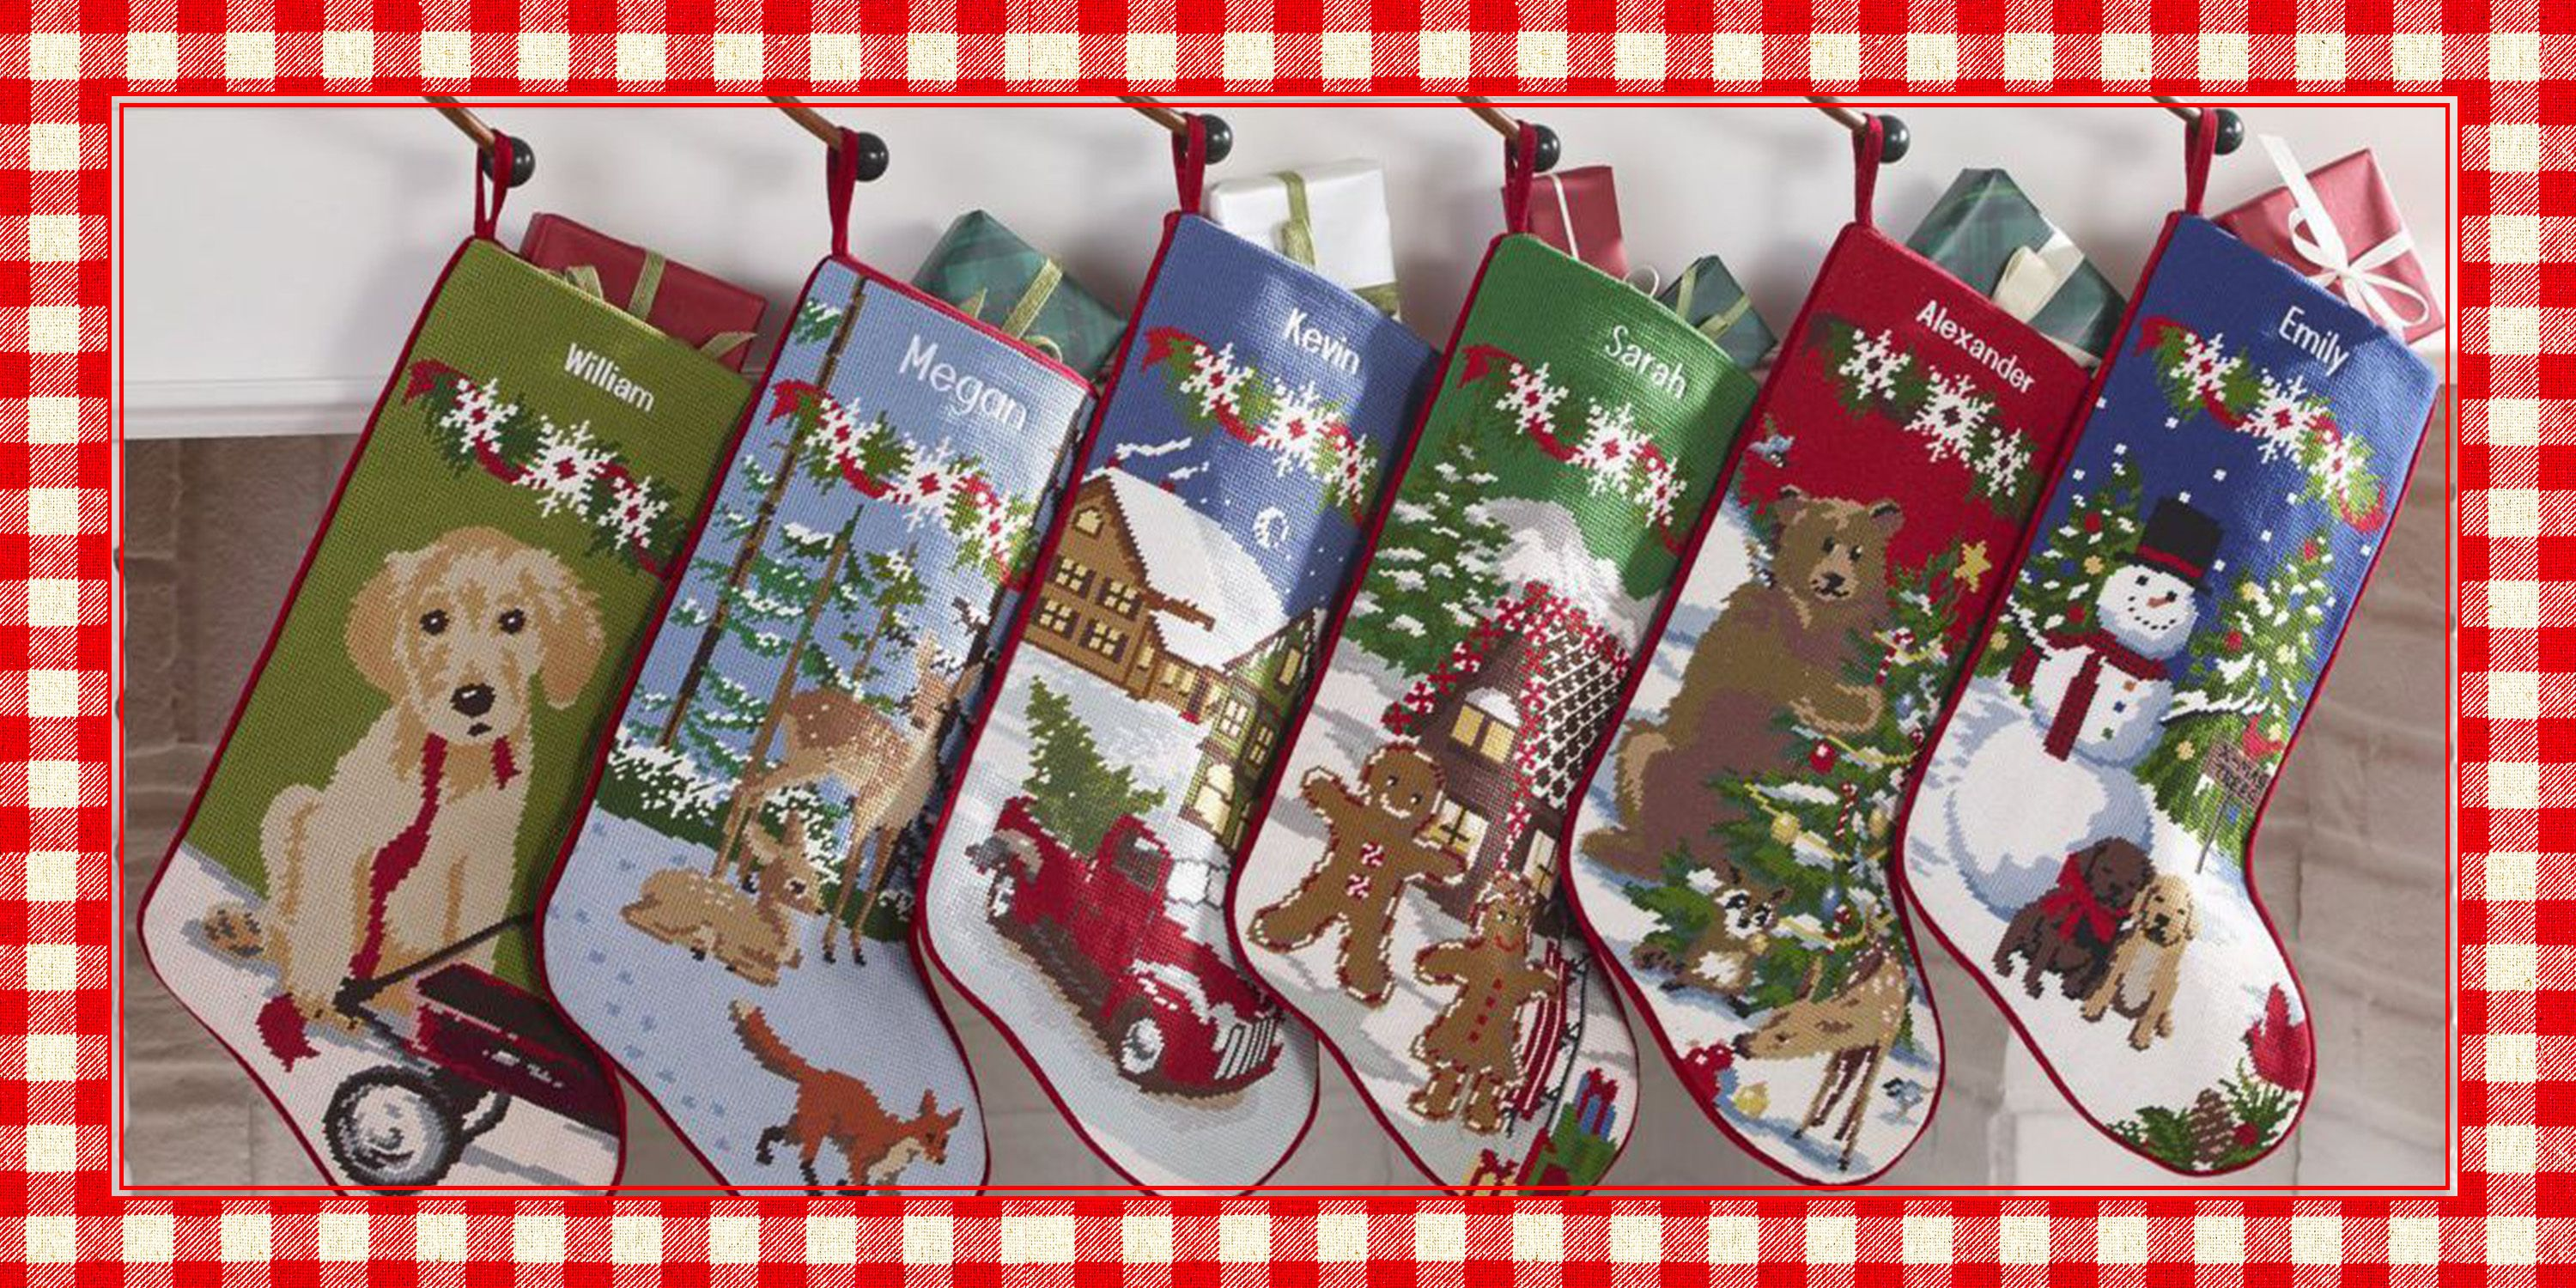 40 Best Personalized Christmas Stockings Unique Stocking Ideas